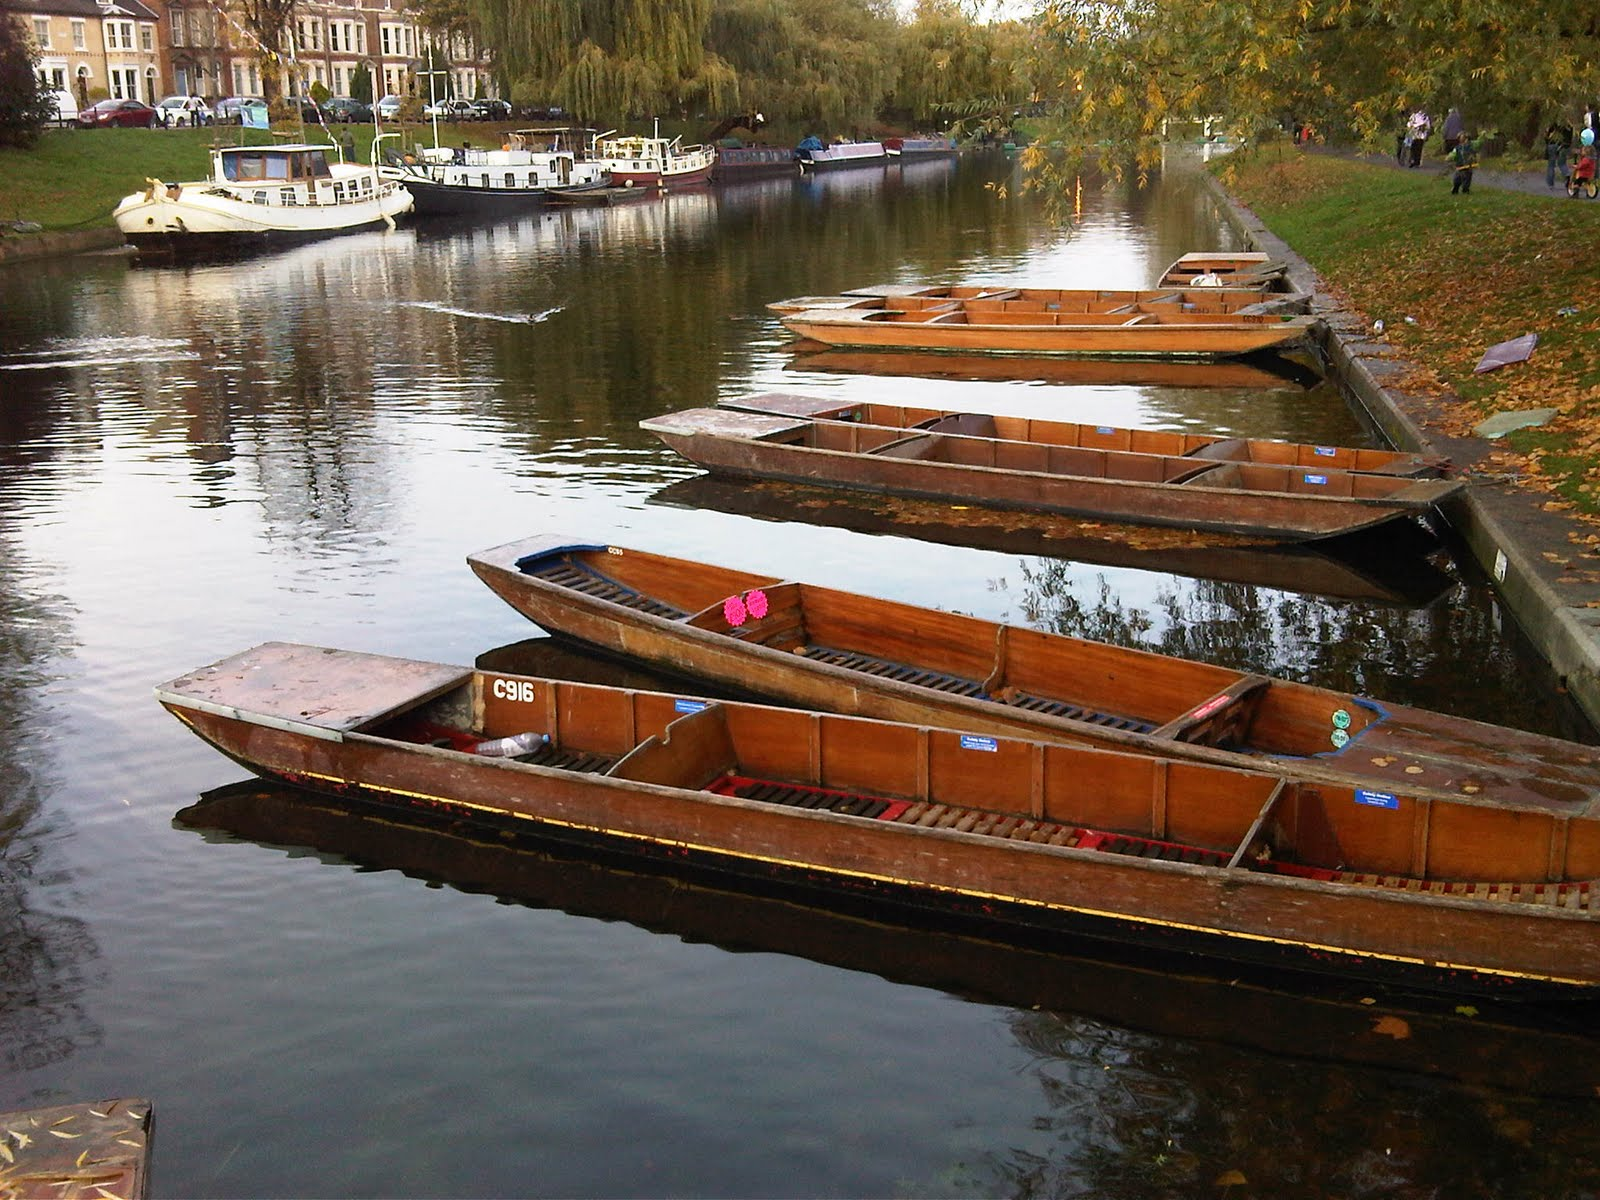 Classic wooden motor boat plans, j boat for sale florida ...